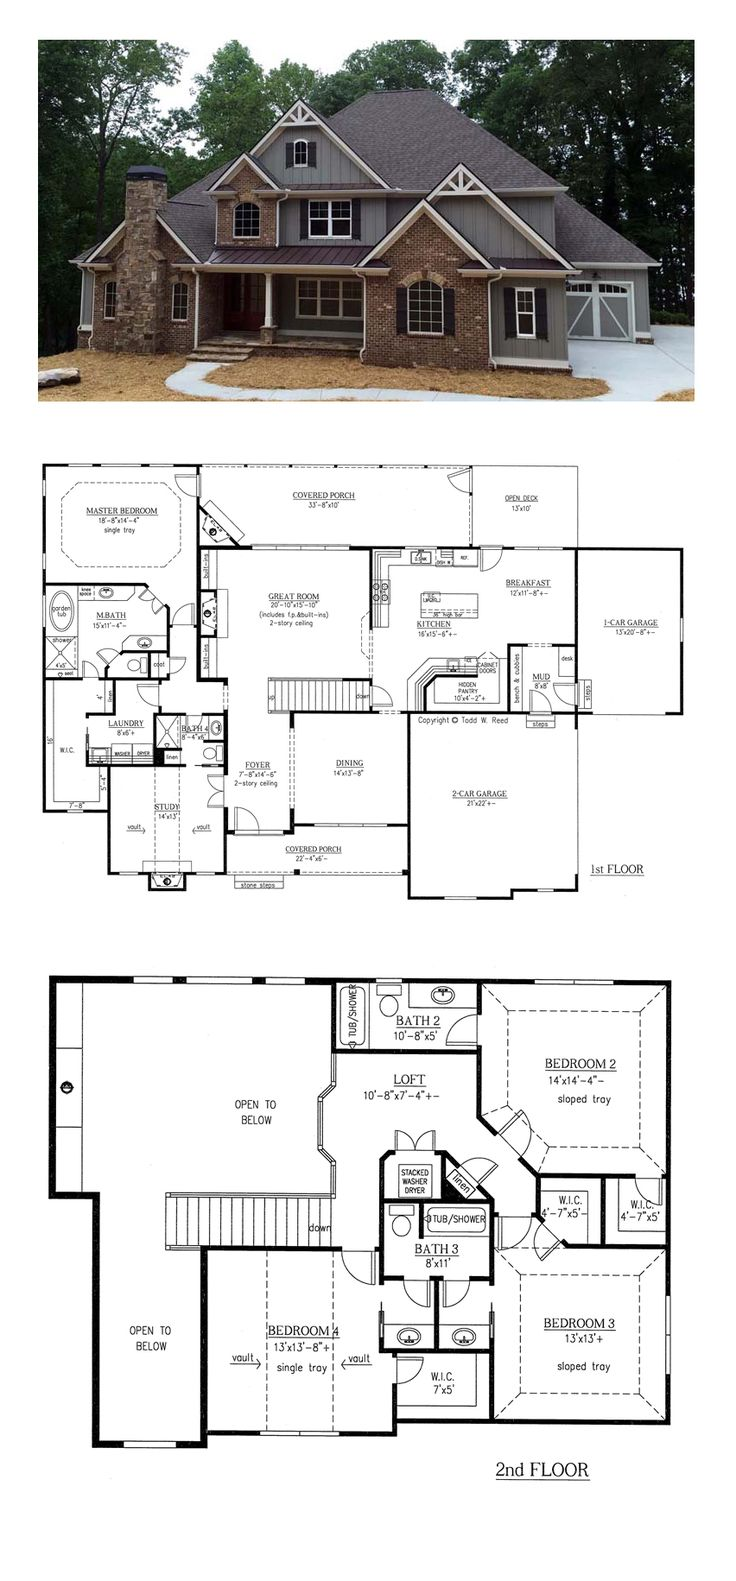 Layout design house - French Country House Plan 50263 Total Living Area 3290 Sq Ft